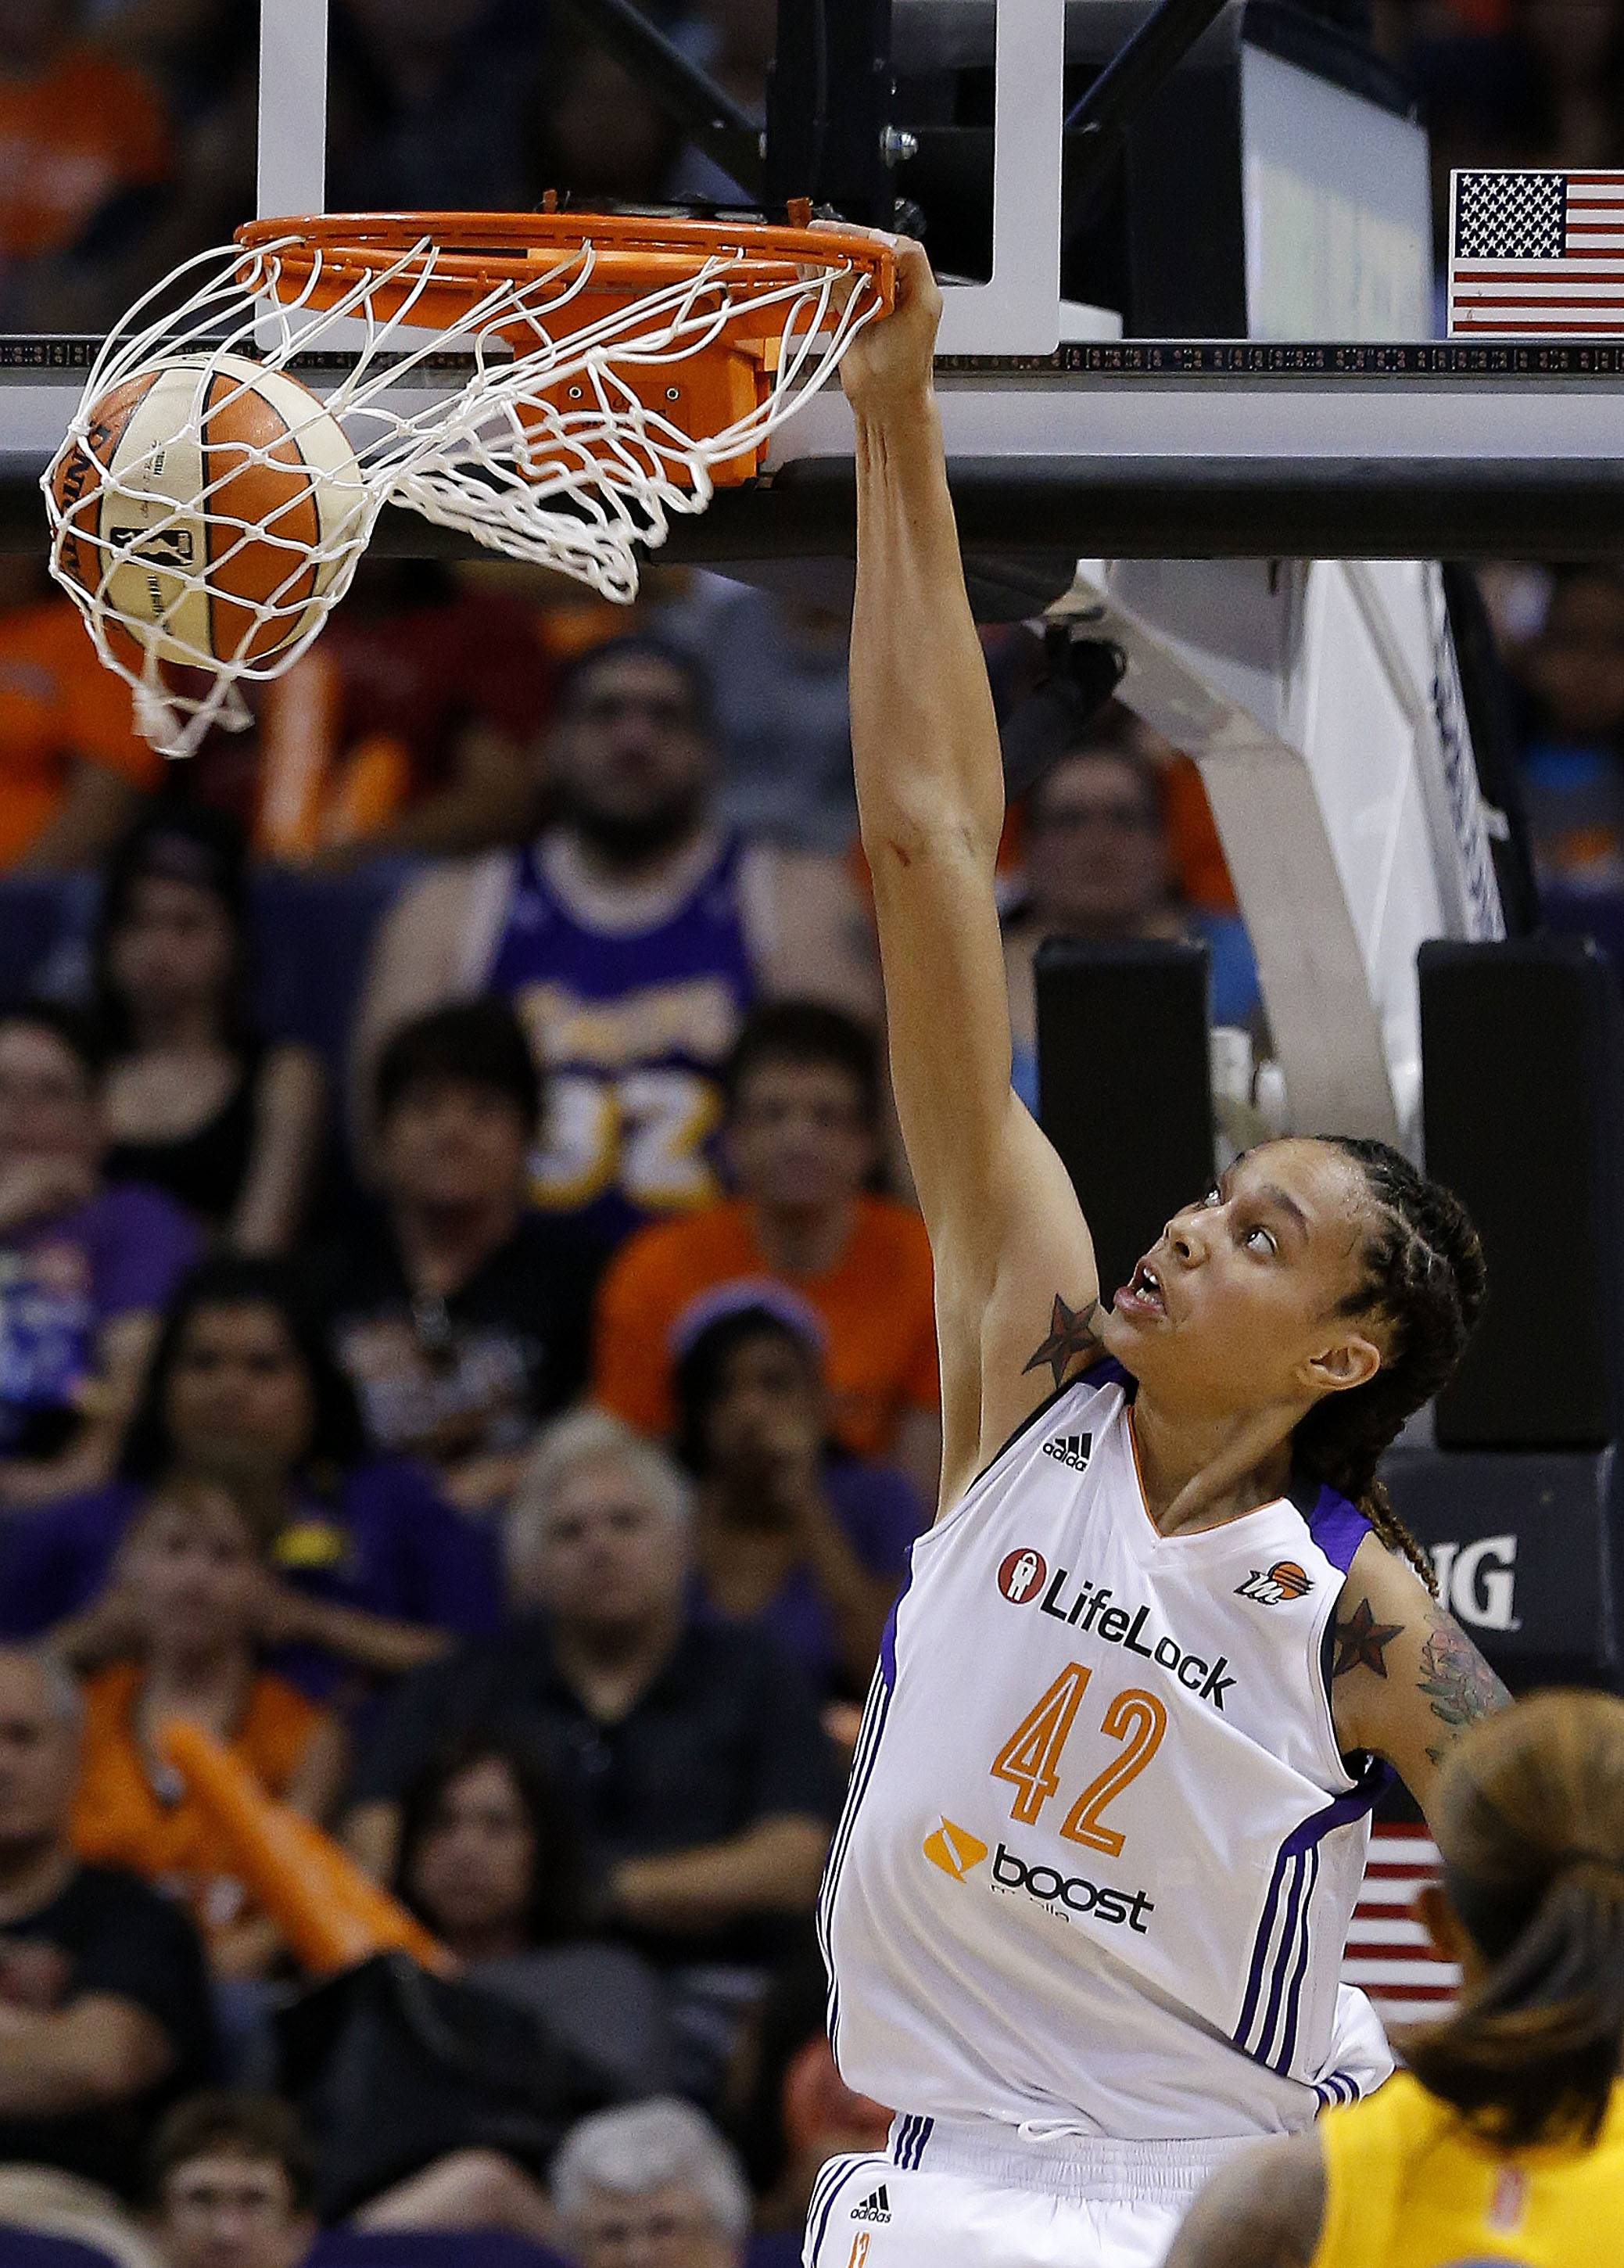 The Phoenix Mercury's Brittney Griner as embraced her role as a prominent gay athlete since finishing a record-breaking career at Baylor.